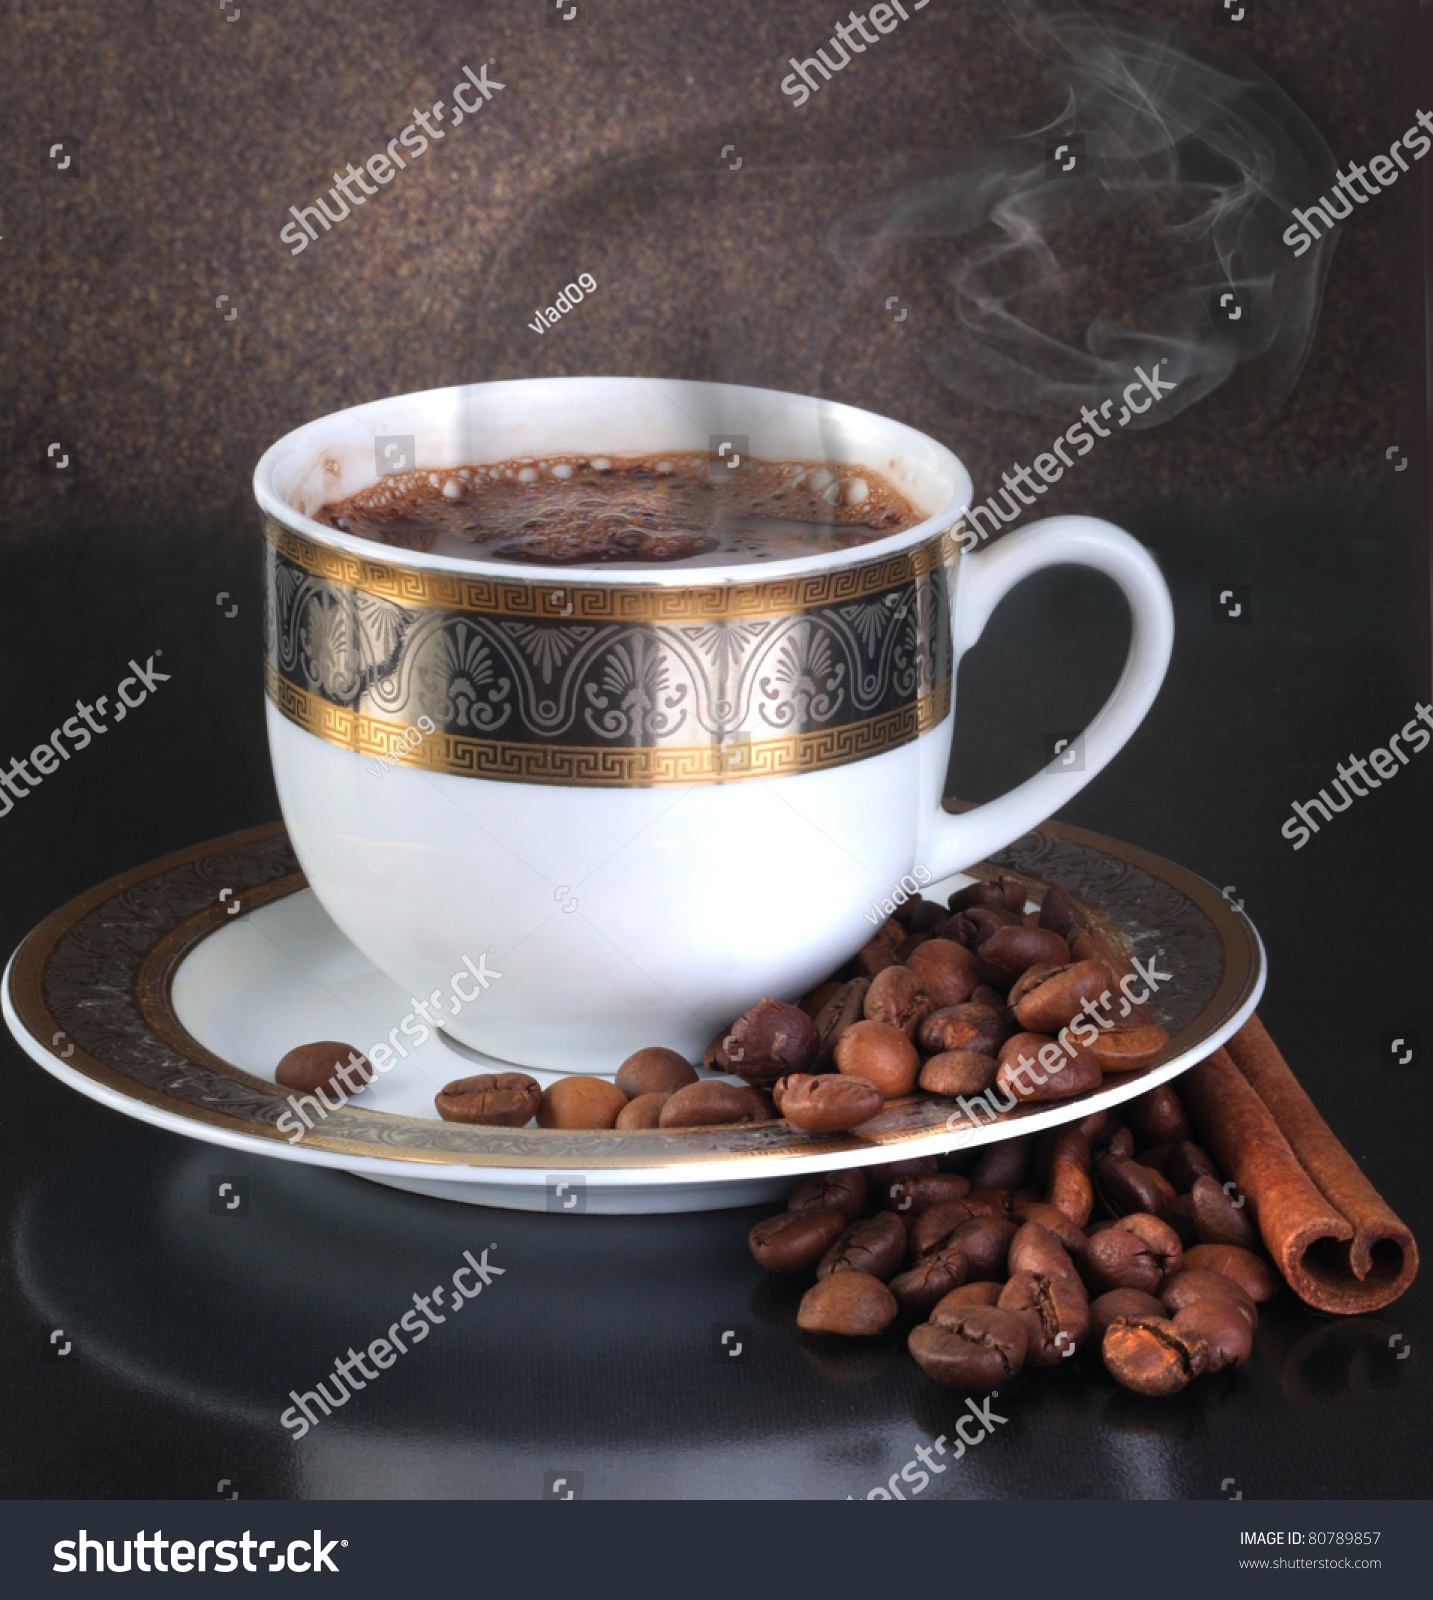 how to make a strong cup of coffee